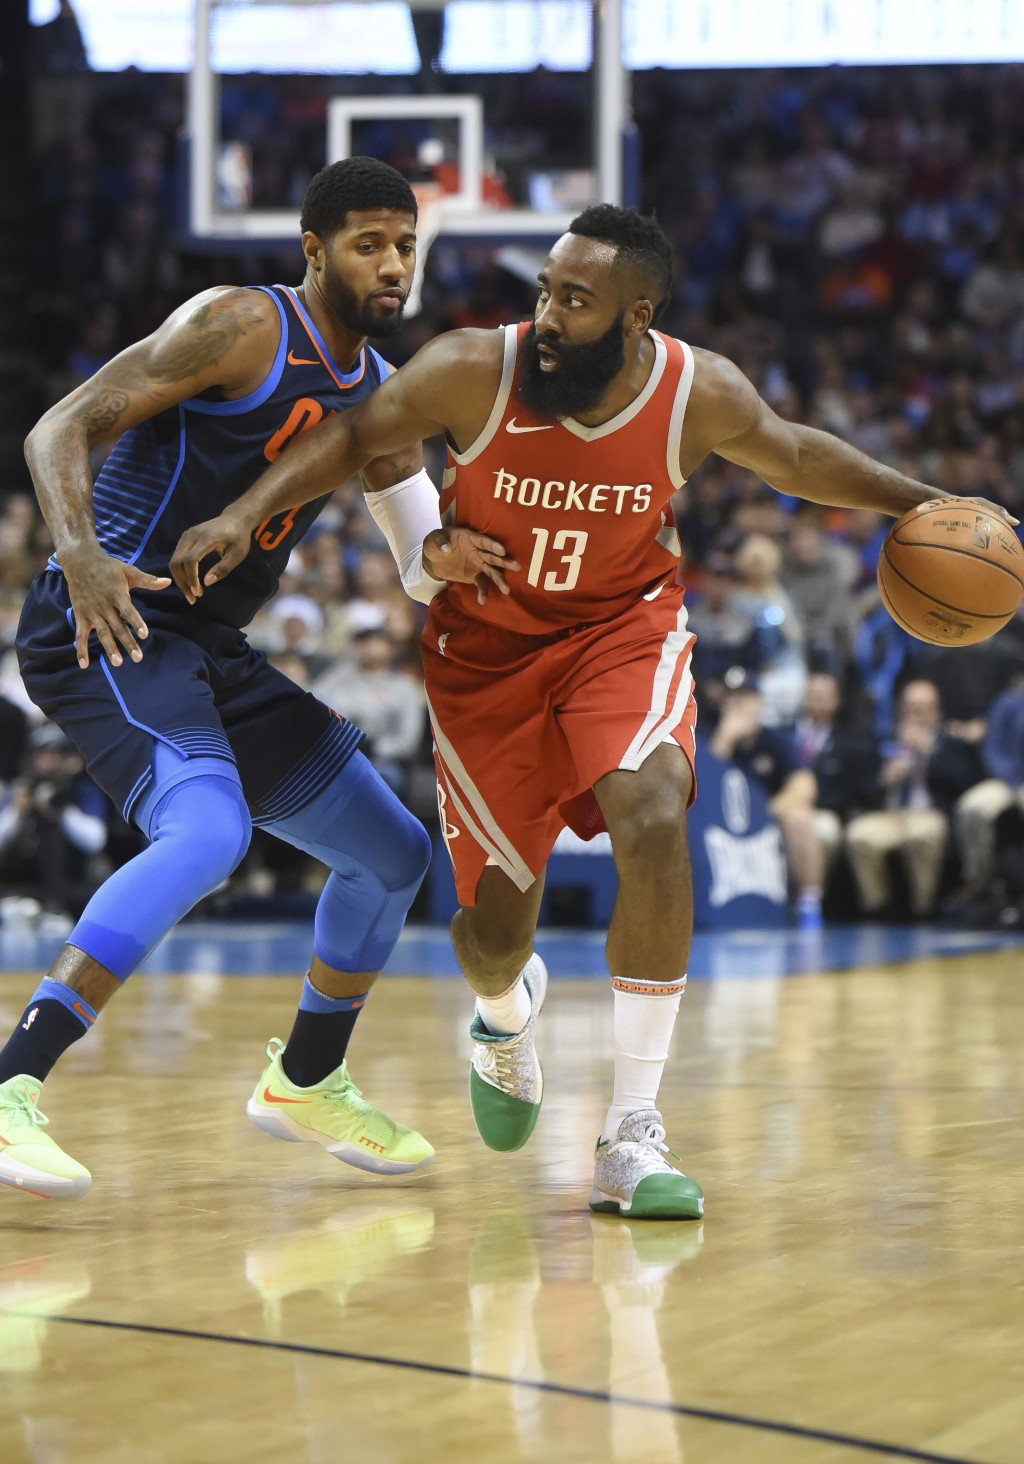 Houston Rockets' James Harden (13) pushes past Oklahoma City Thunder's Paul George (13) in the first quarter of an NBA basketball game in Oklahoma Cit...